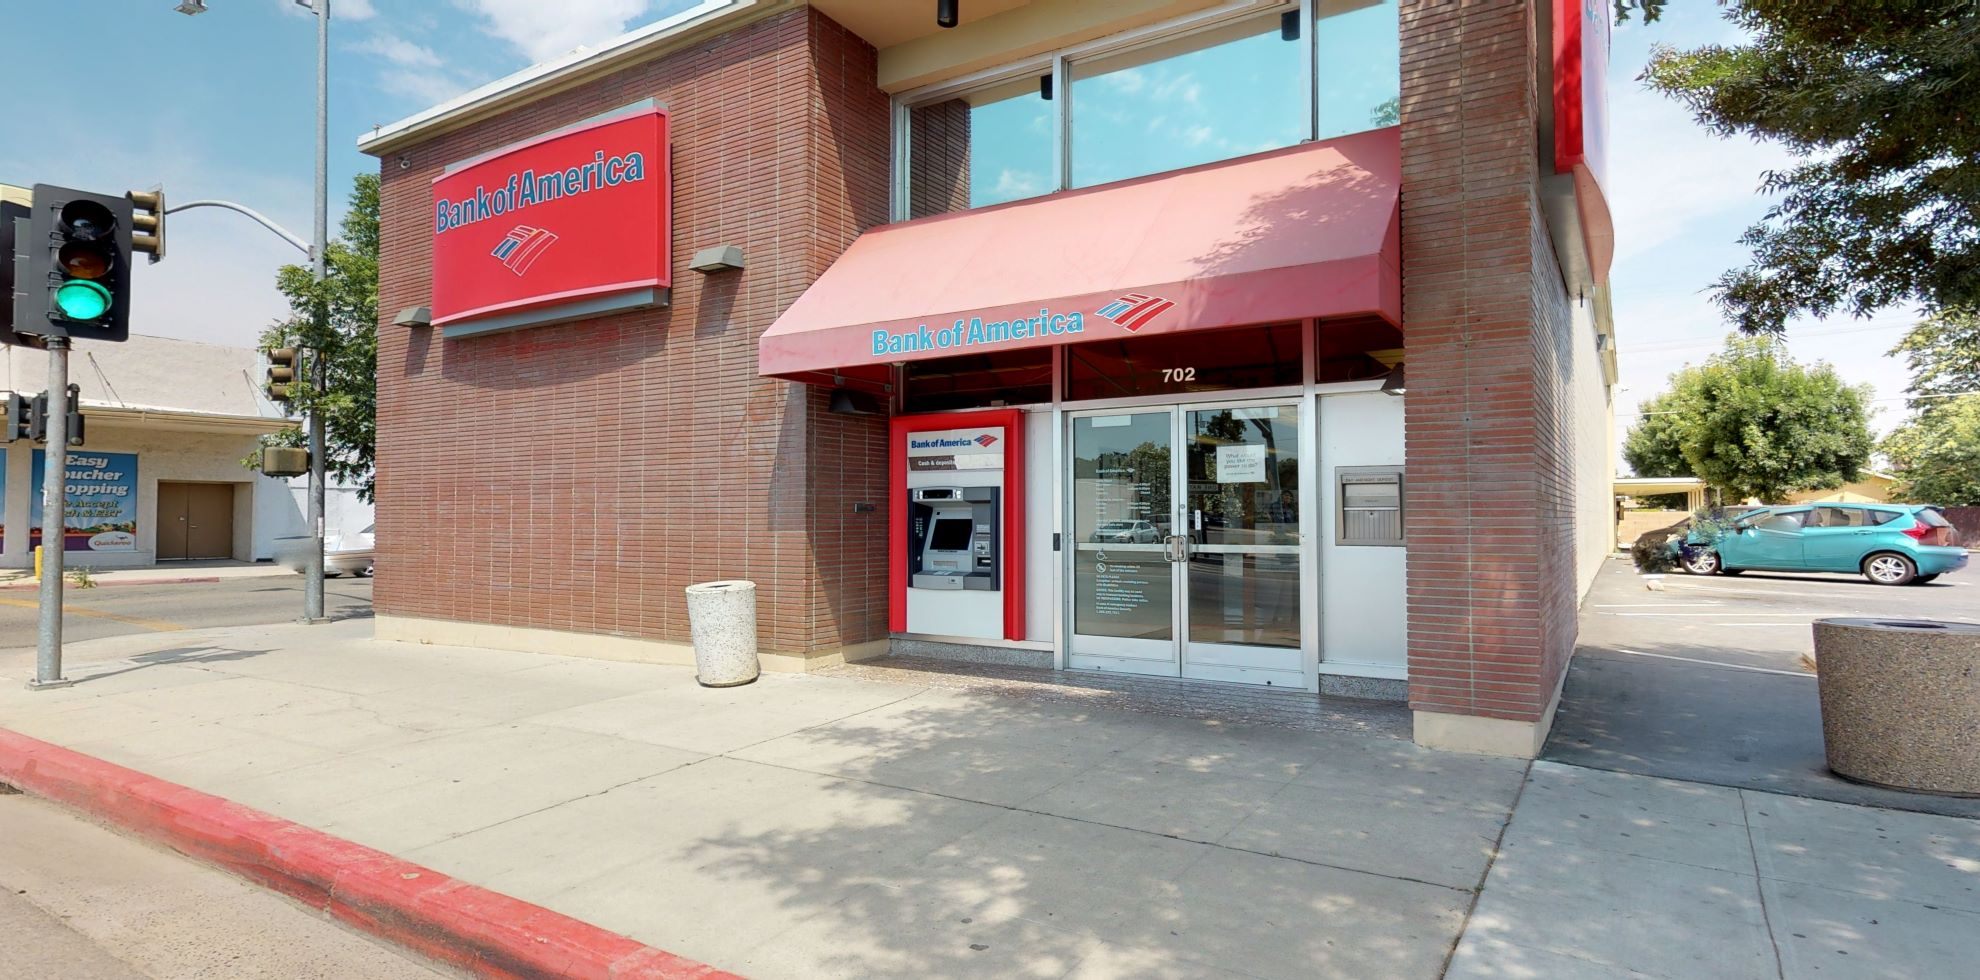 Bank of America financial center with walk-up ATM | 702 S Madera Ave, Kerman, CA 93630